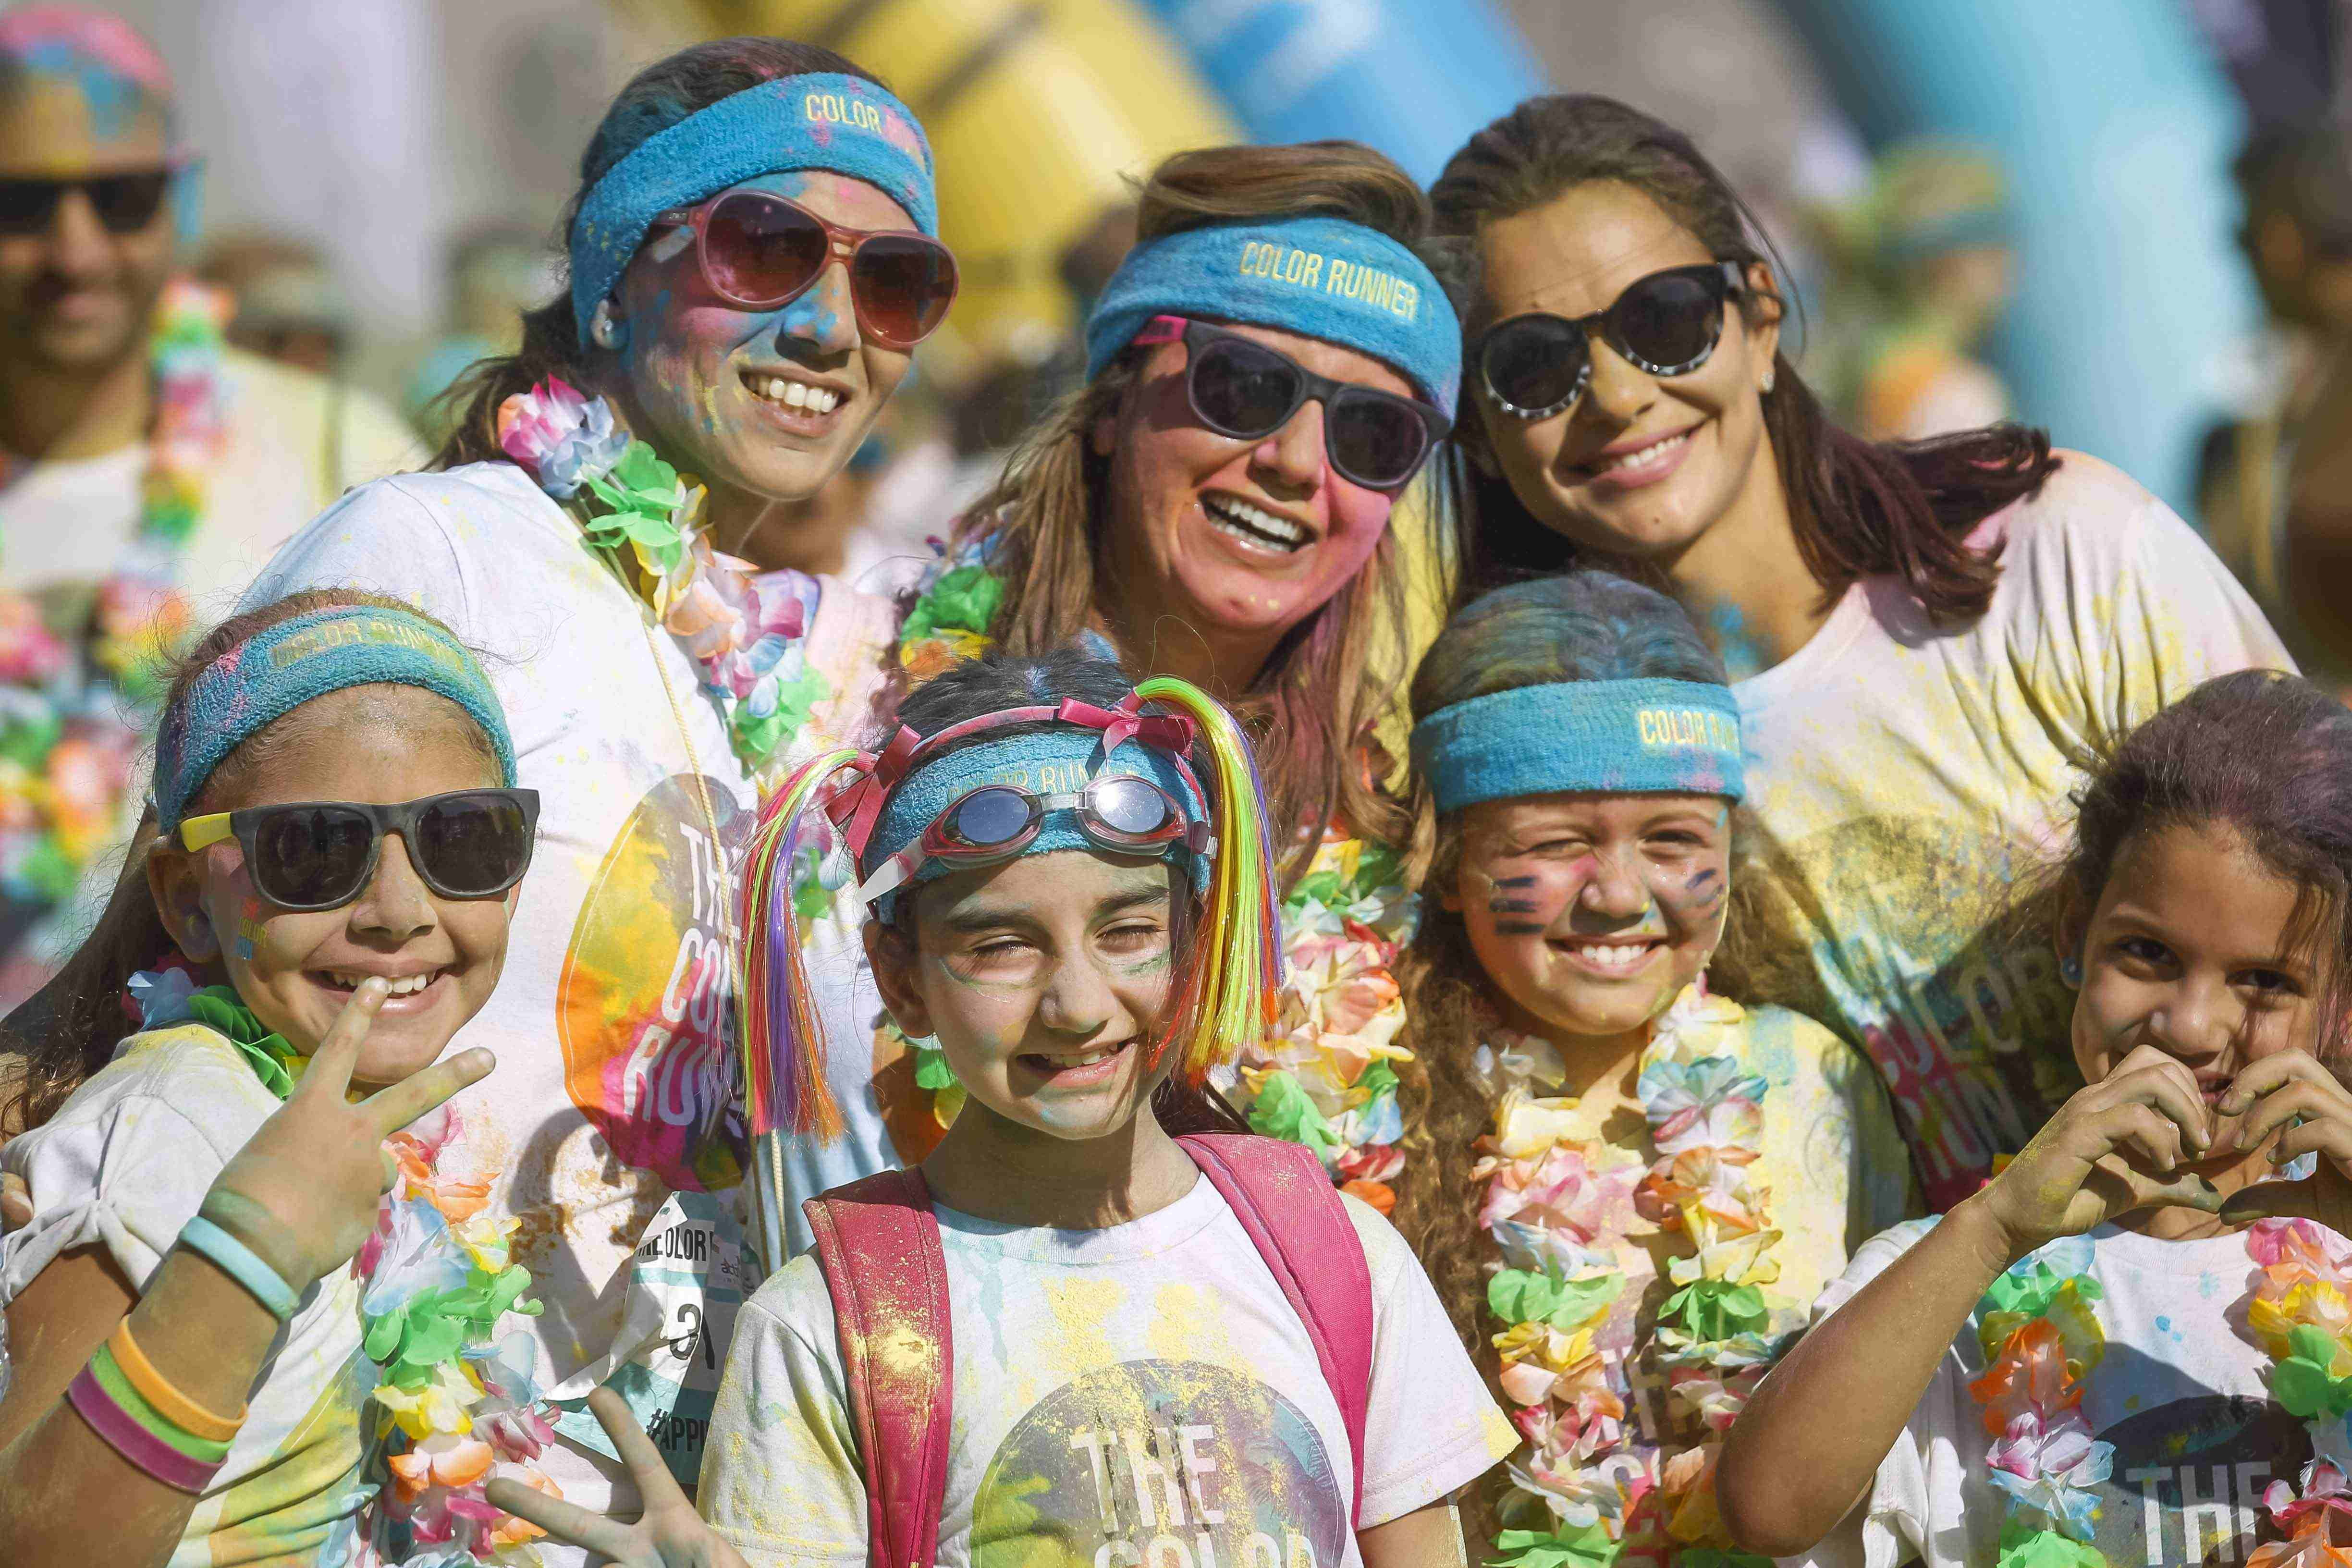 the-color-run-presented-by-damans-activelife-offers-an-exciting-day-out-for-families-and-friends